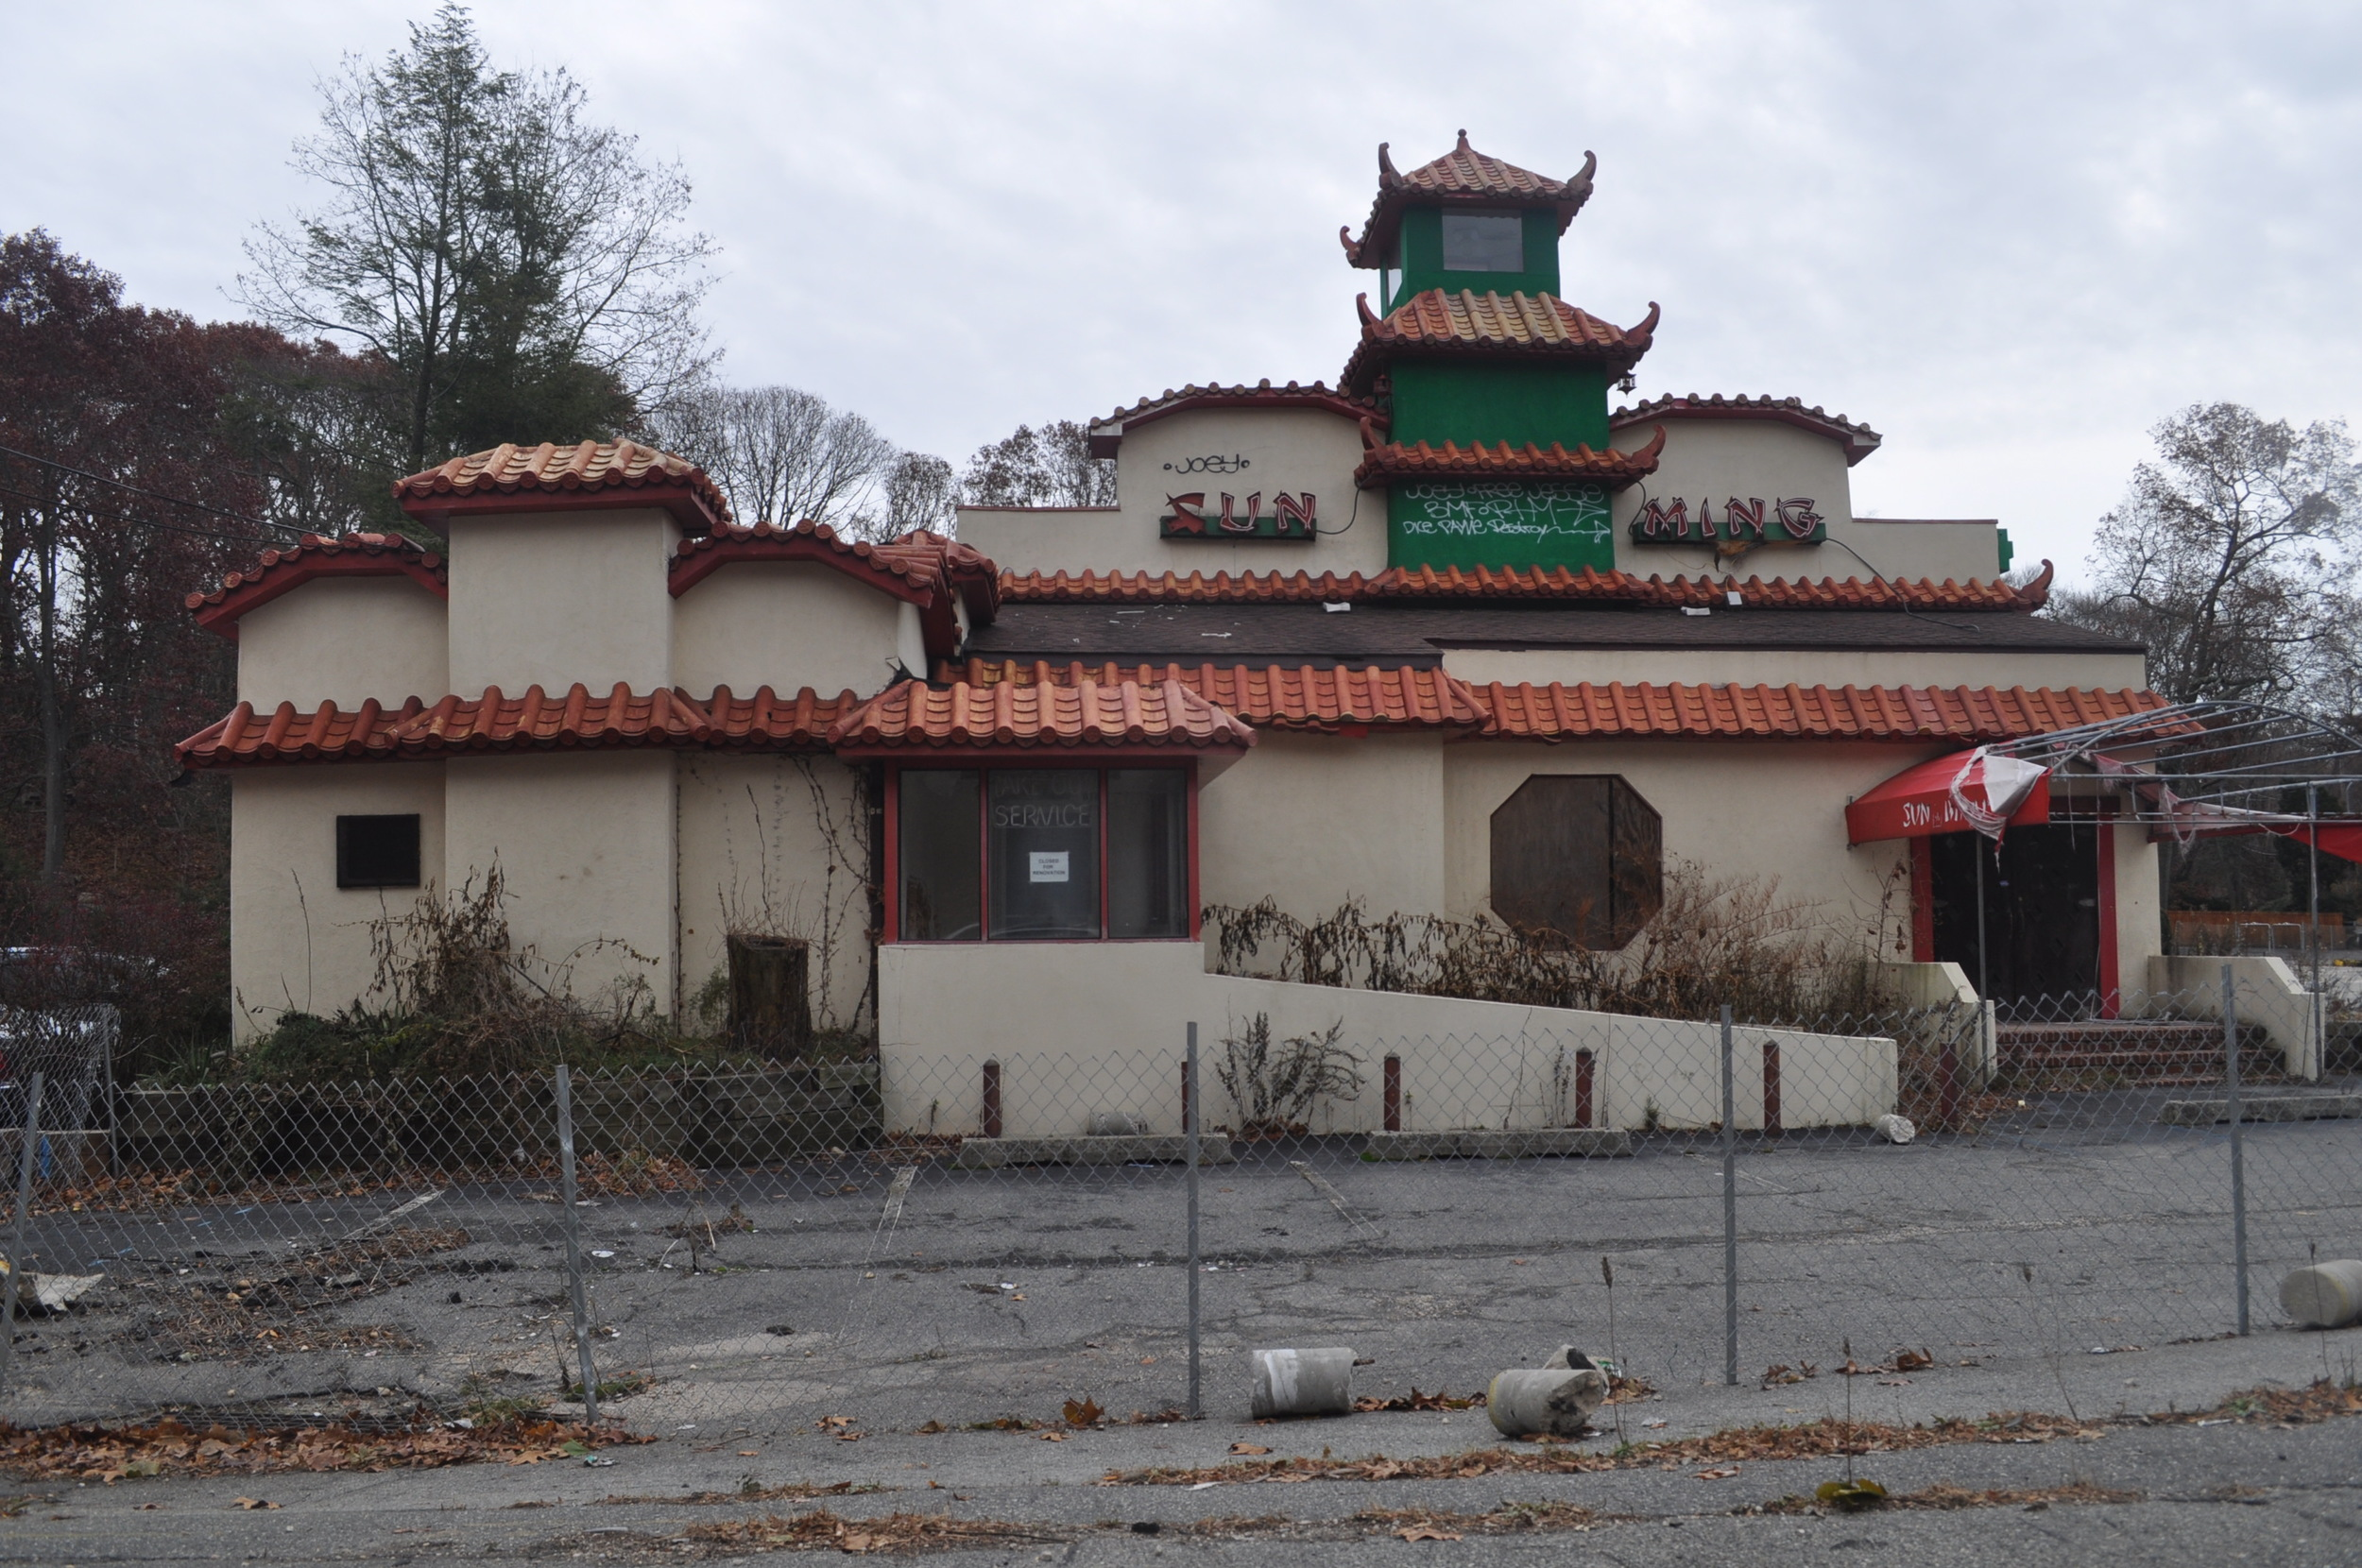 A proposal to convert the former Sun Ming property (pictured) into a mixed-use building was rejected by the Huntington Zoning Board of Appeals (ZBA) last week.